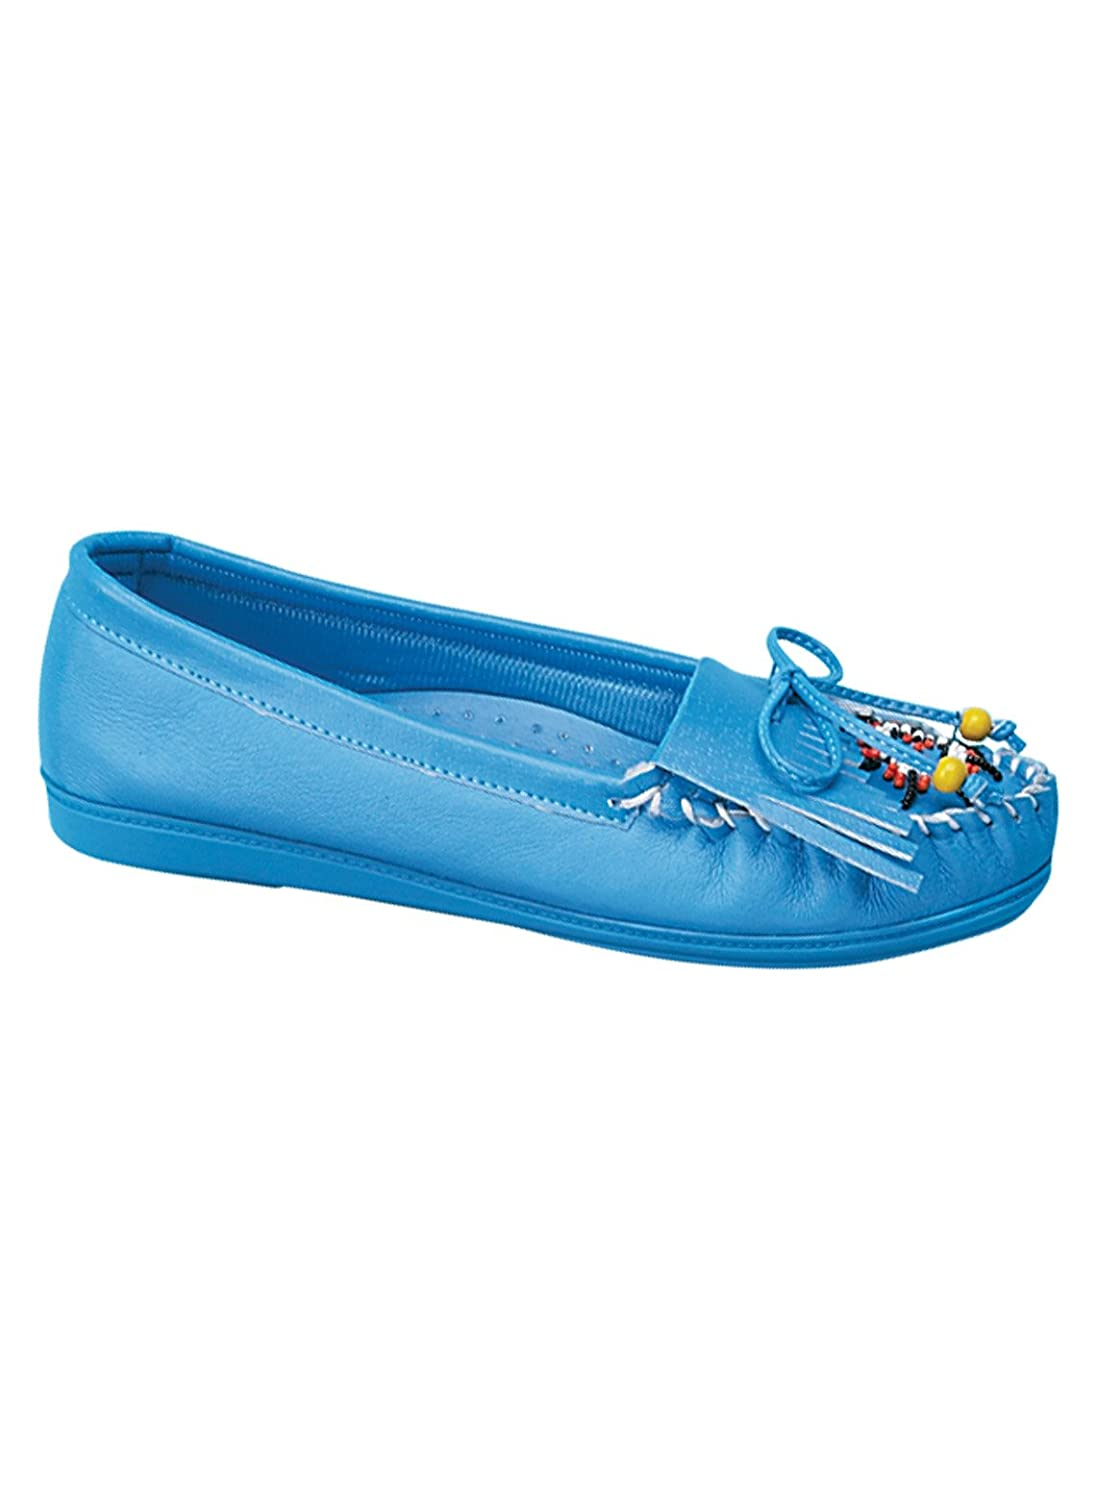 88ed5dad4 Amazon.com | Carol Wright Gifts Leather Moccasins | Beaded Leather Moccasins  for Women | Loafers & Slip-Ons